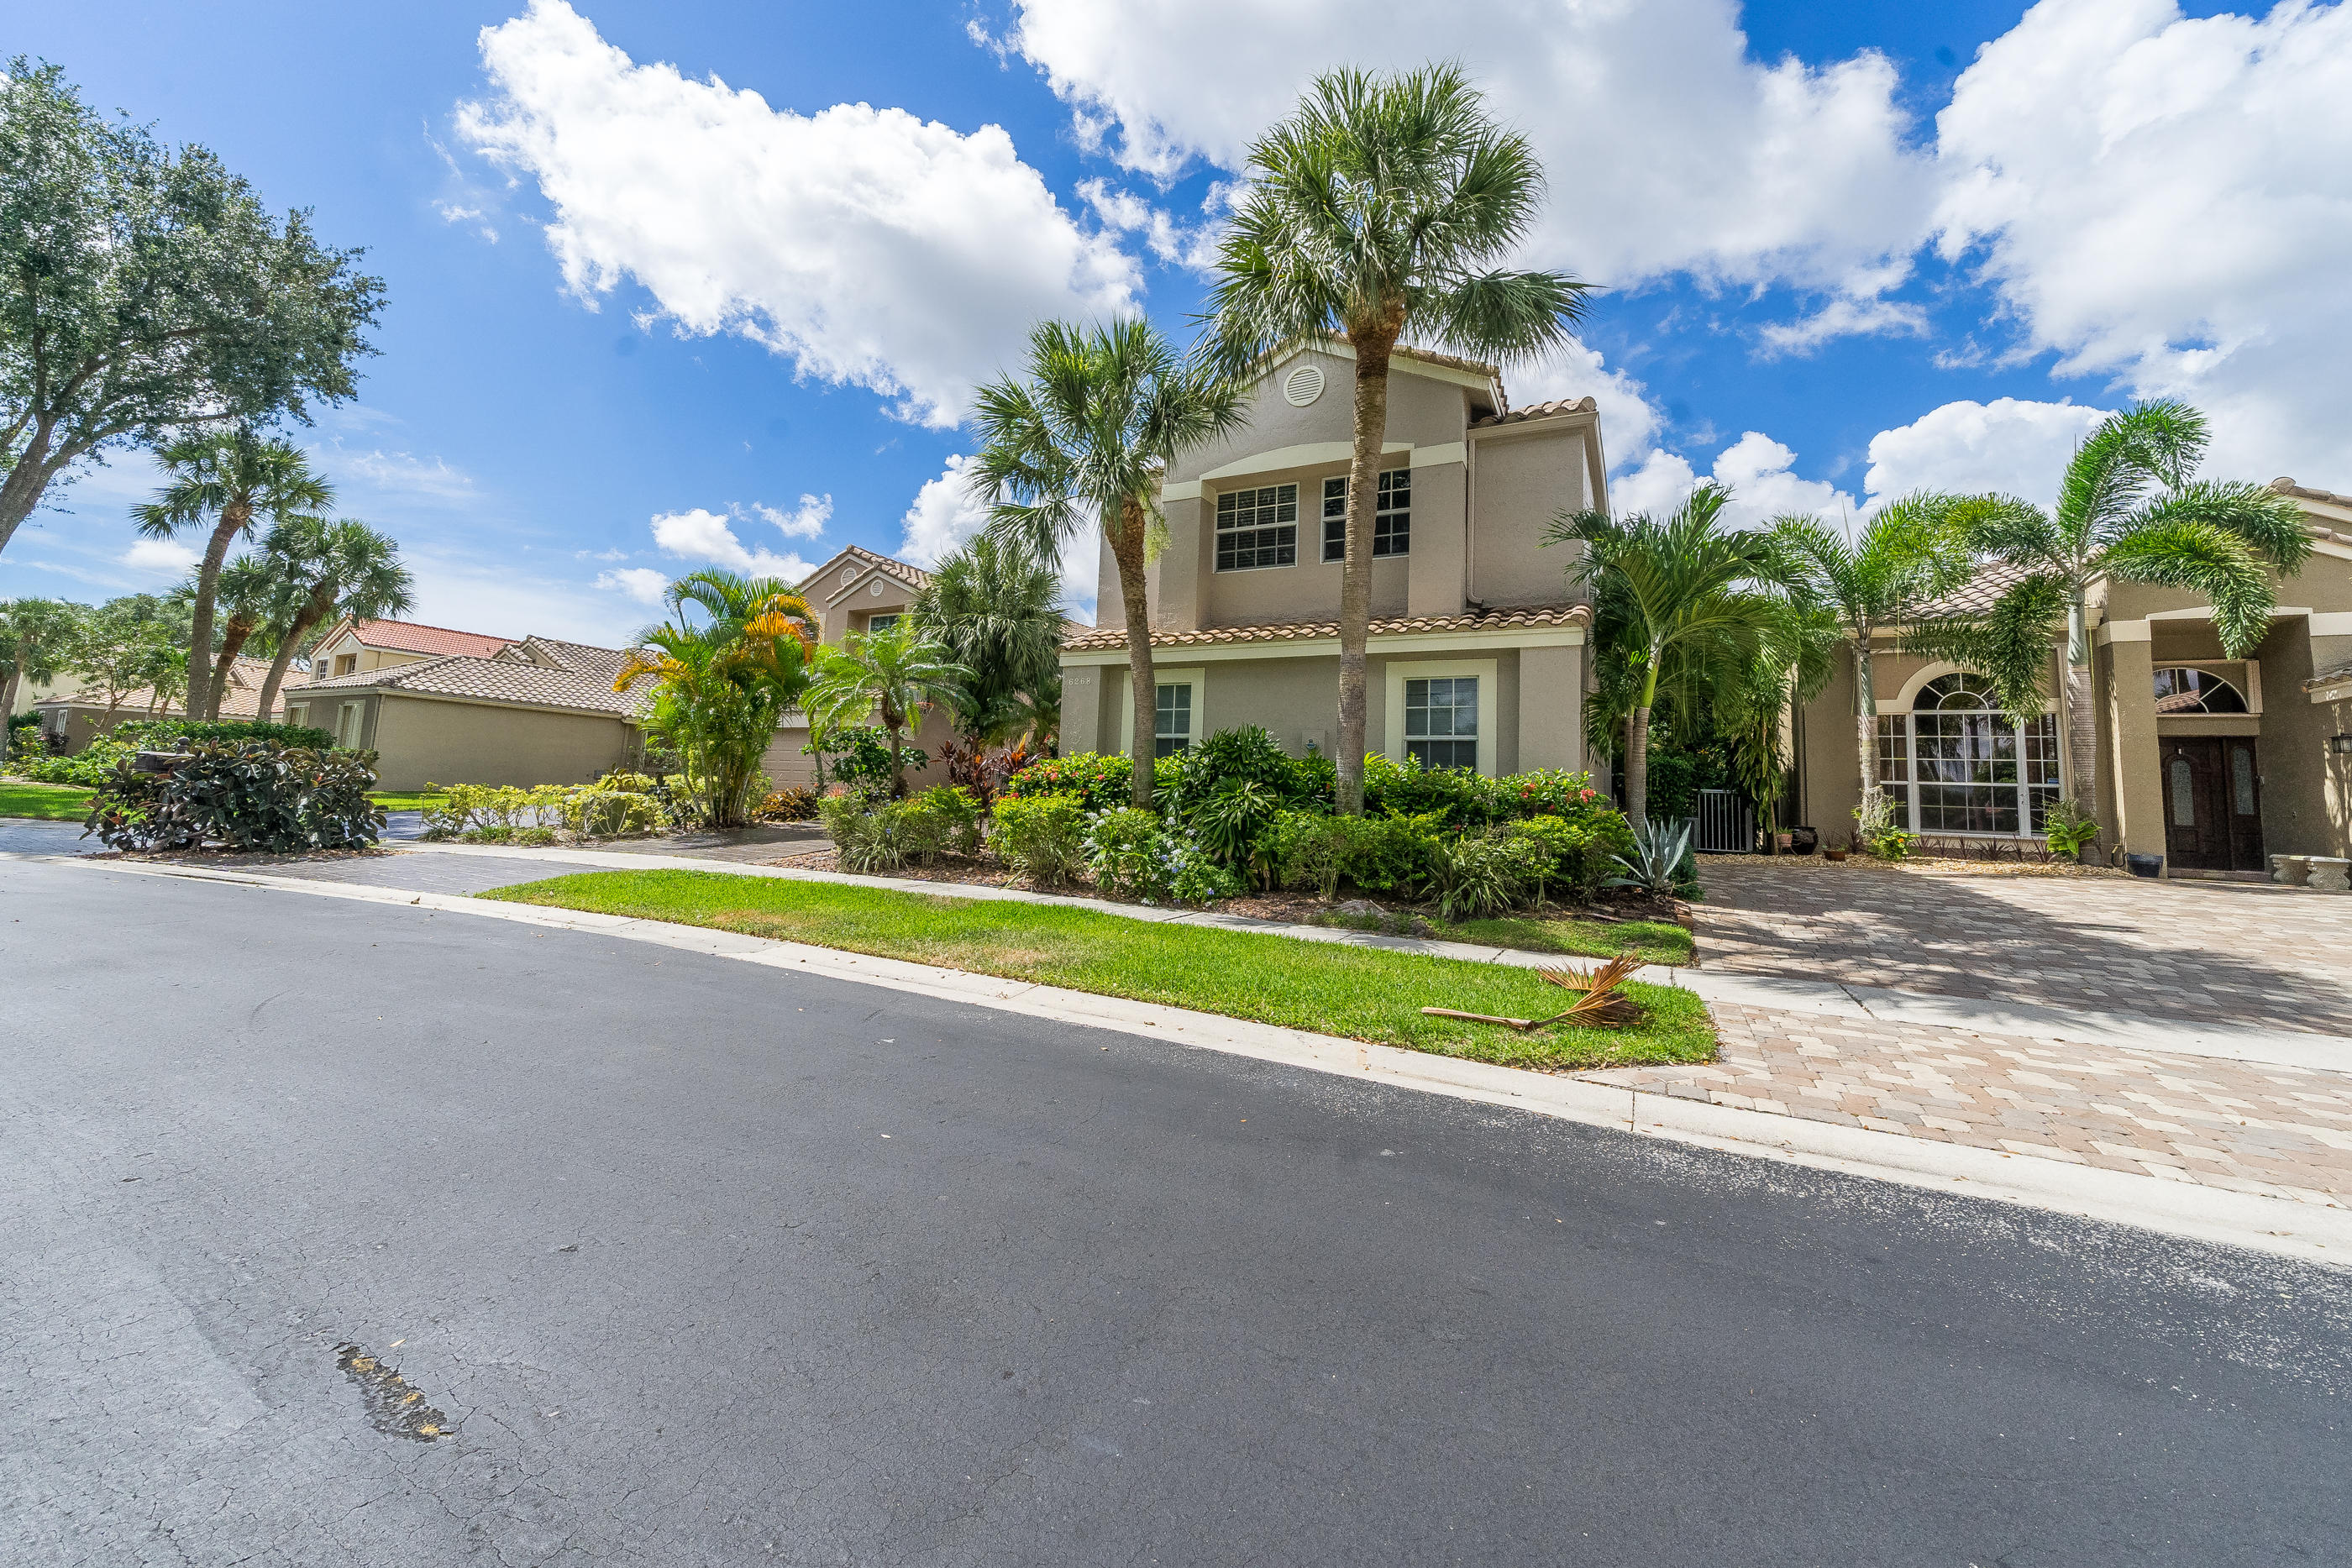 Home for sale in Palladium Boca Raton Florida